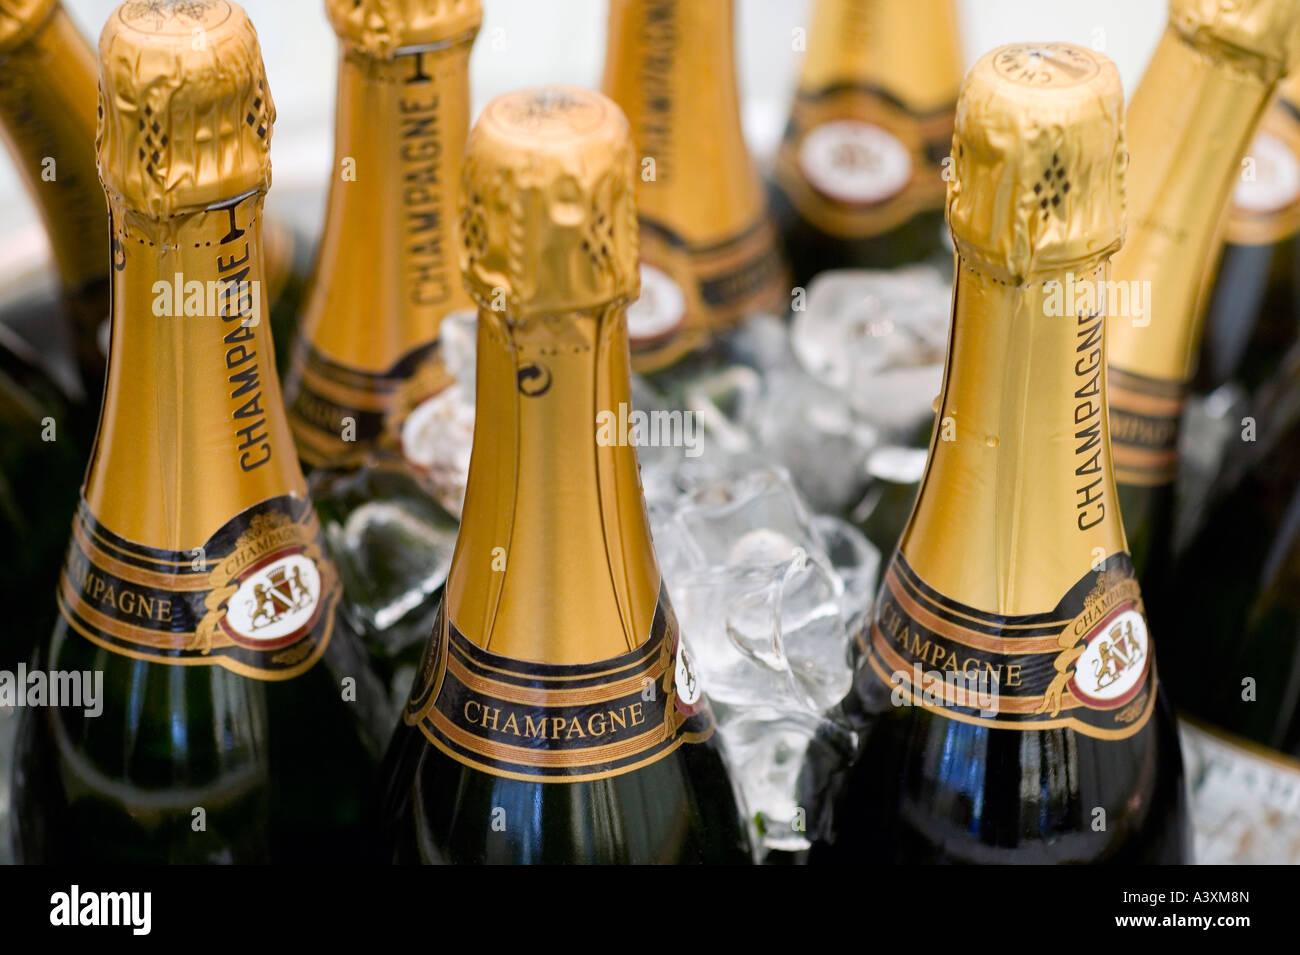 CHAMPAGNE BOTTLES IN ICE BUCKET READY FOR A CELEBRATION